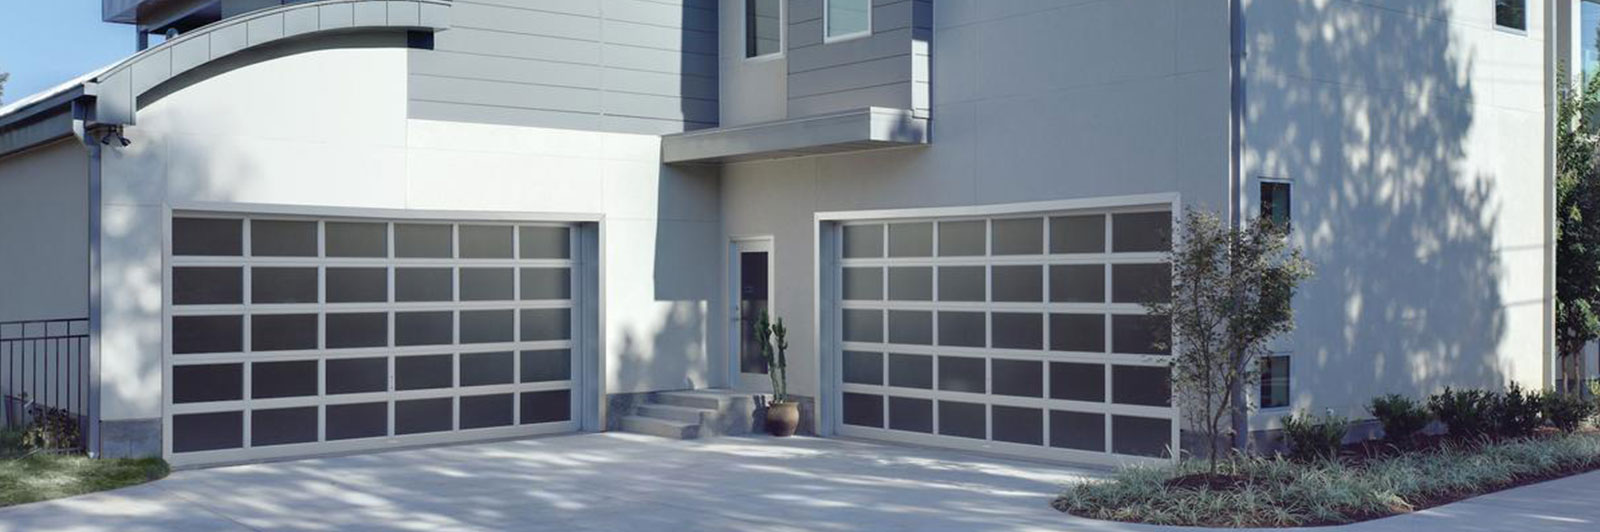 Residential Garage Doors ...